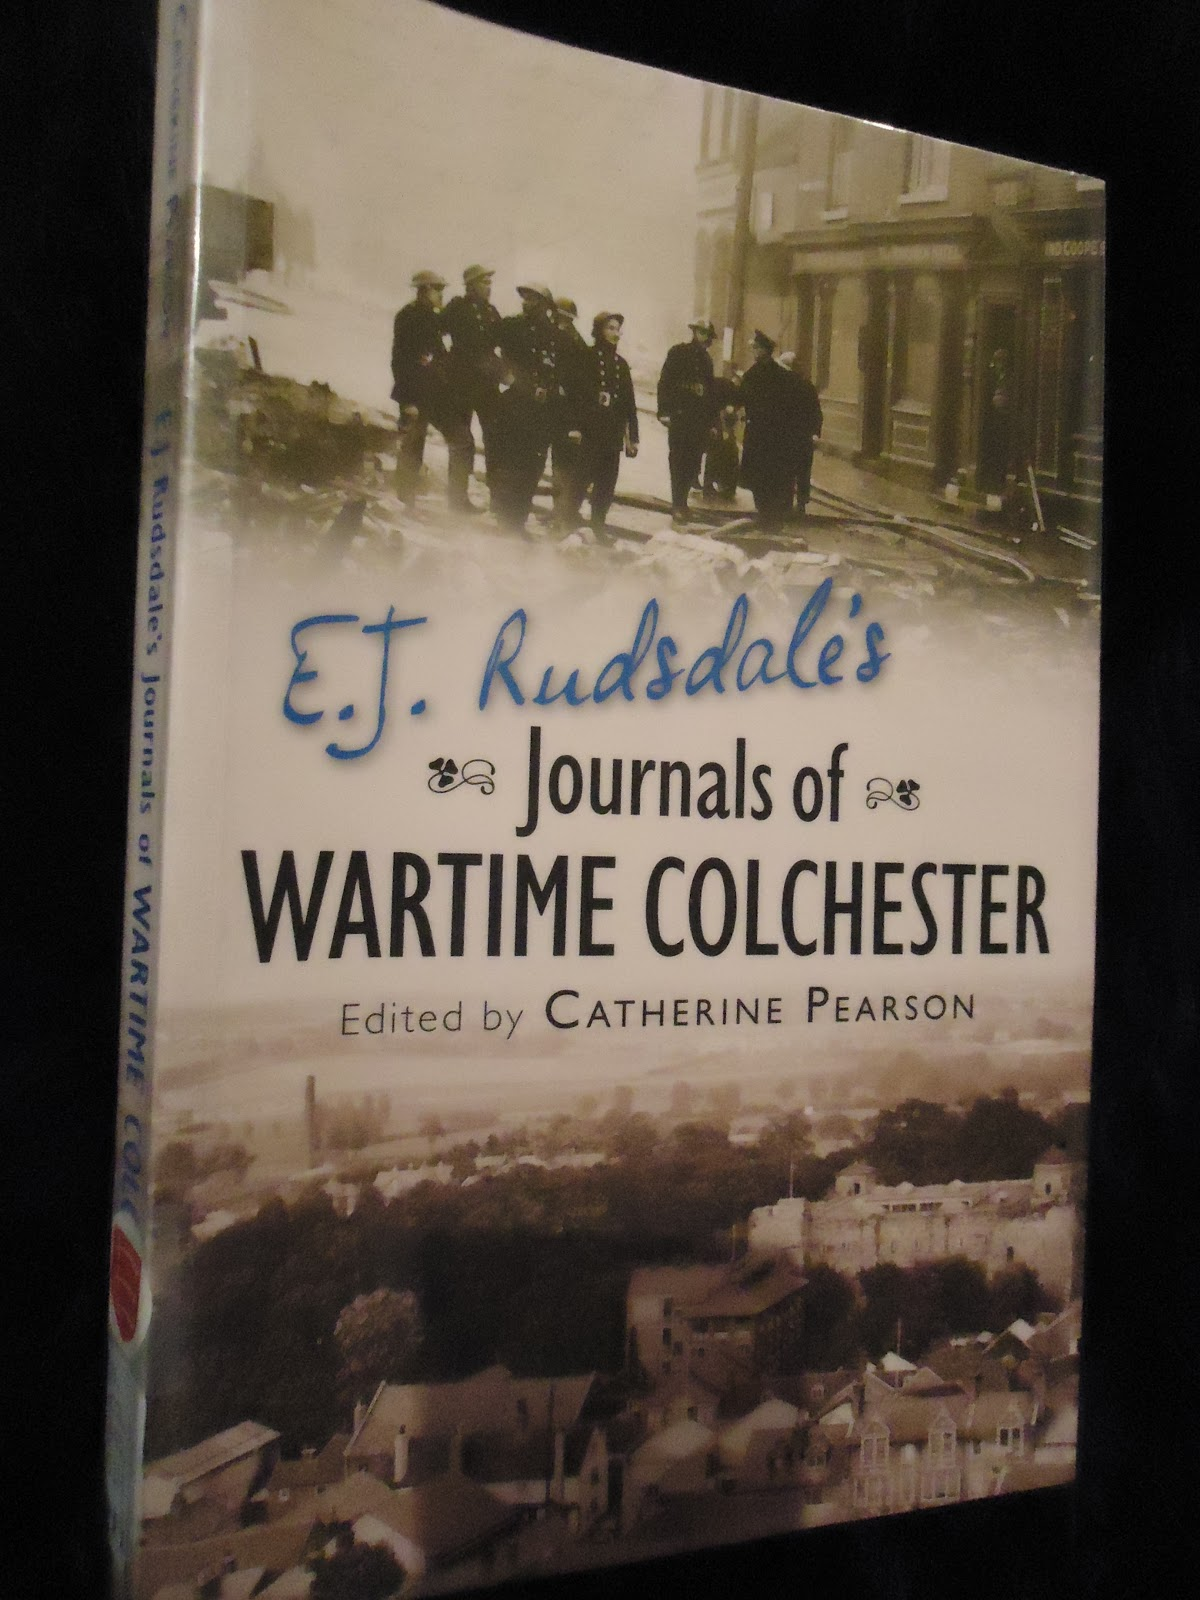 e j rudsdale s journals of wartime colchester pearson catherine